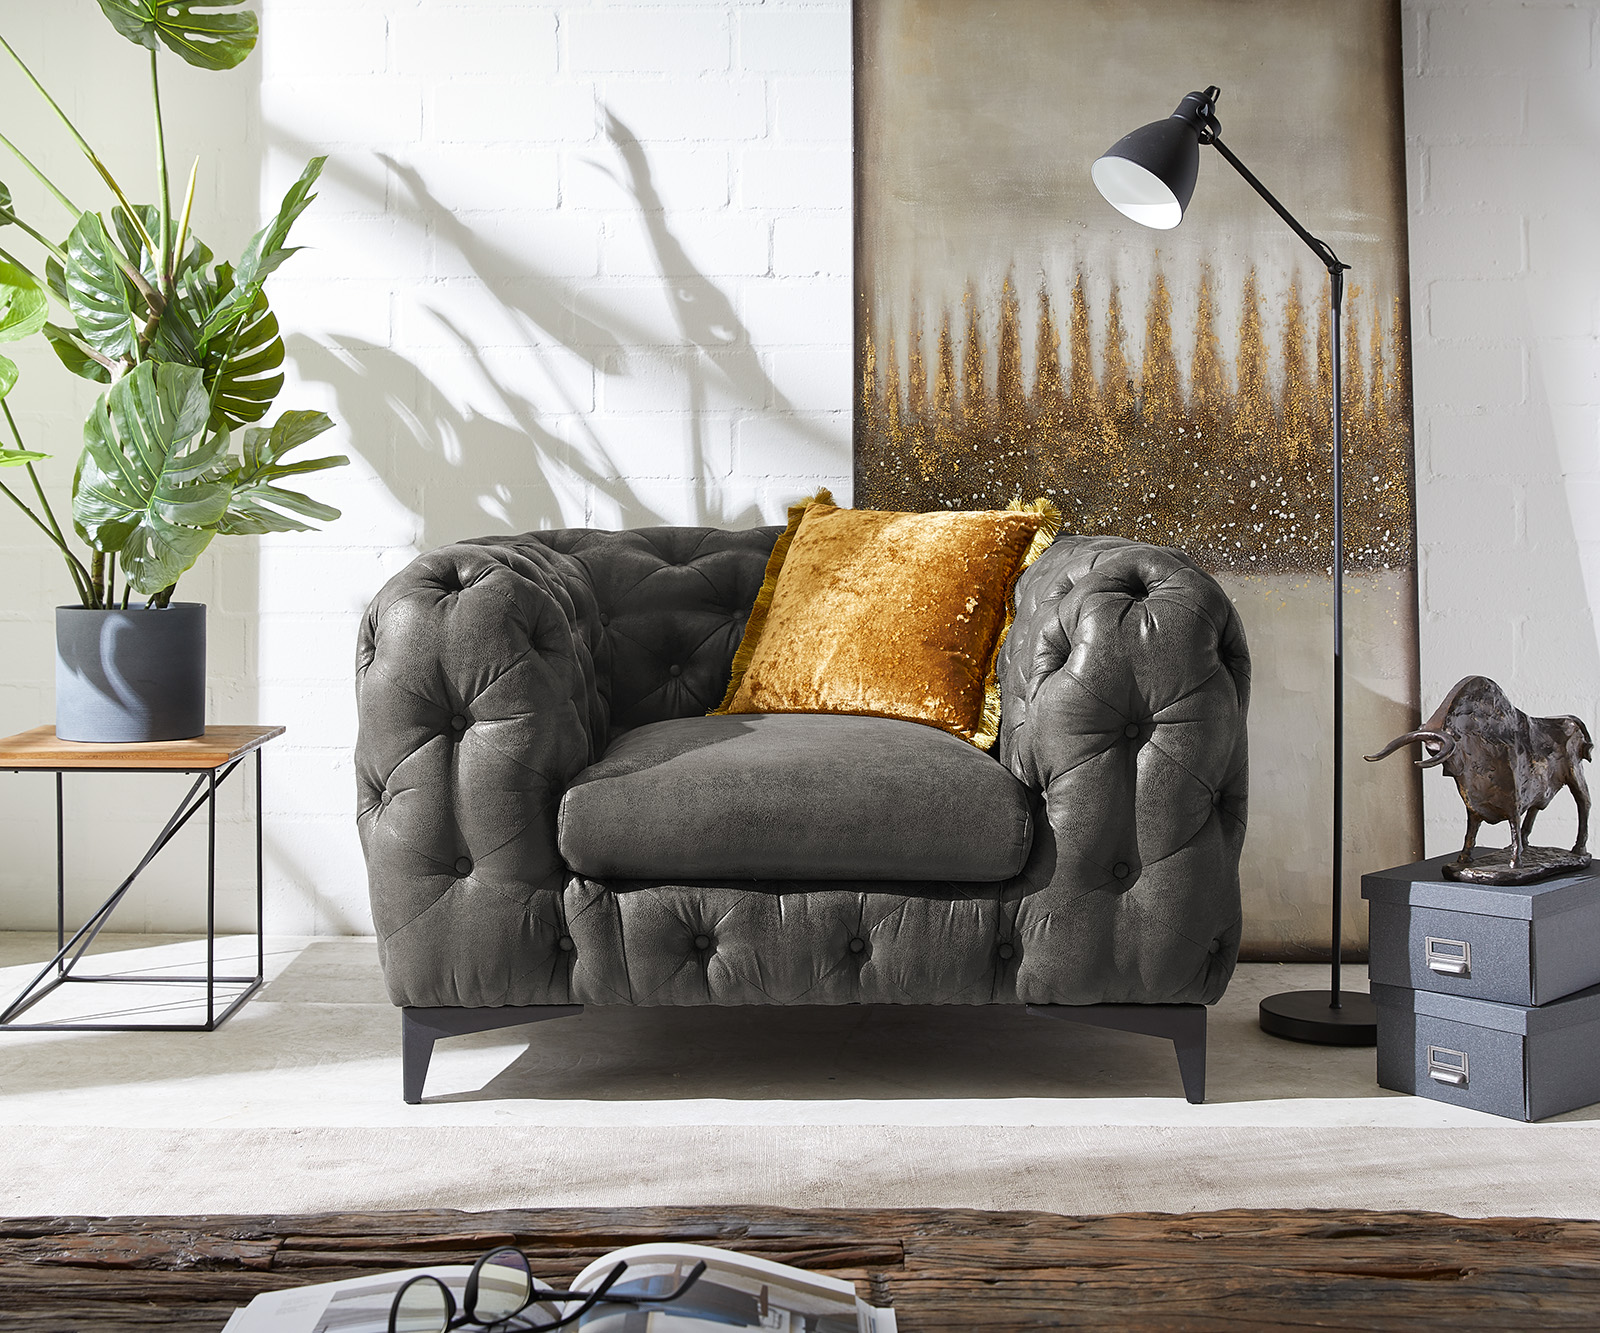 Clubsessel Corleone 120x97 cm Anthrazit Vintage Loungesessel